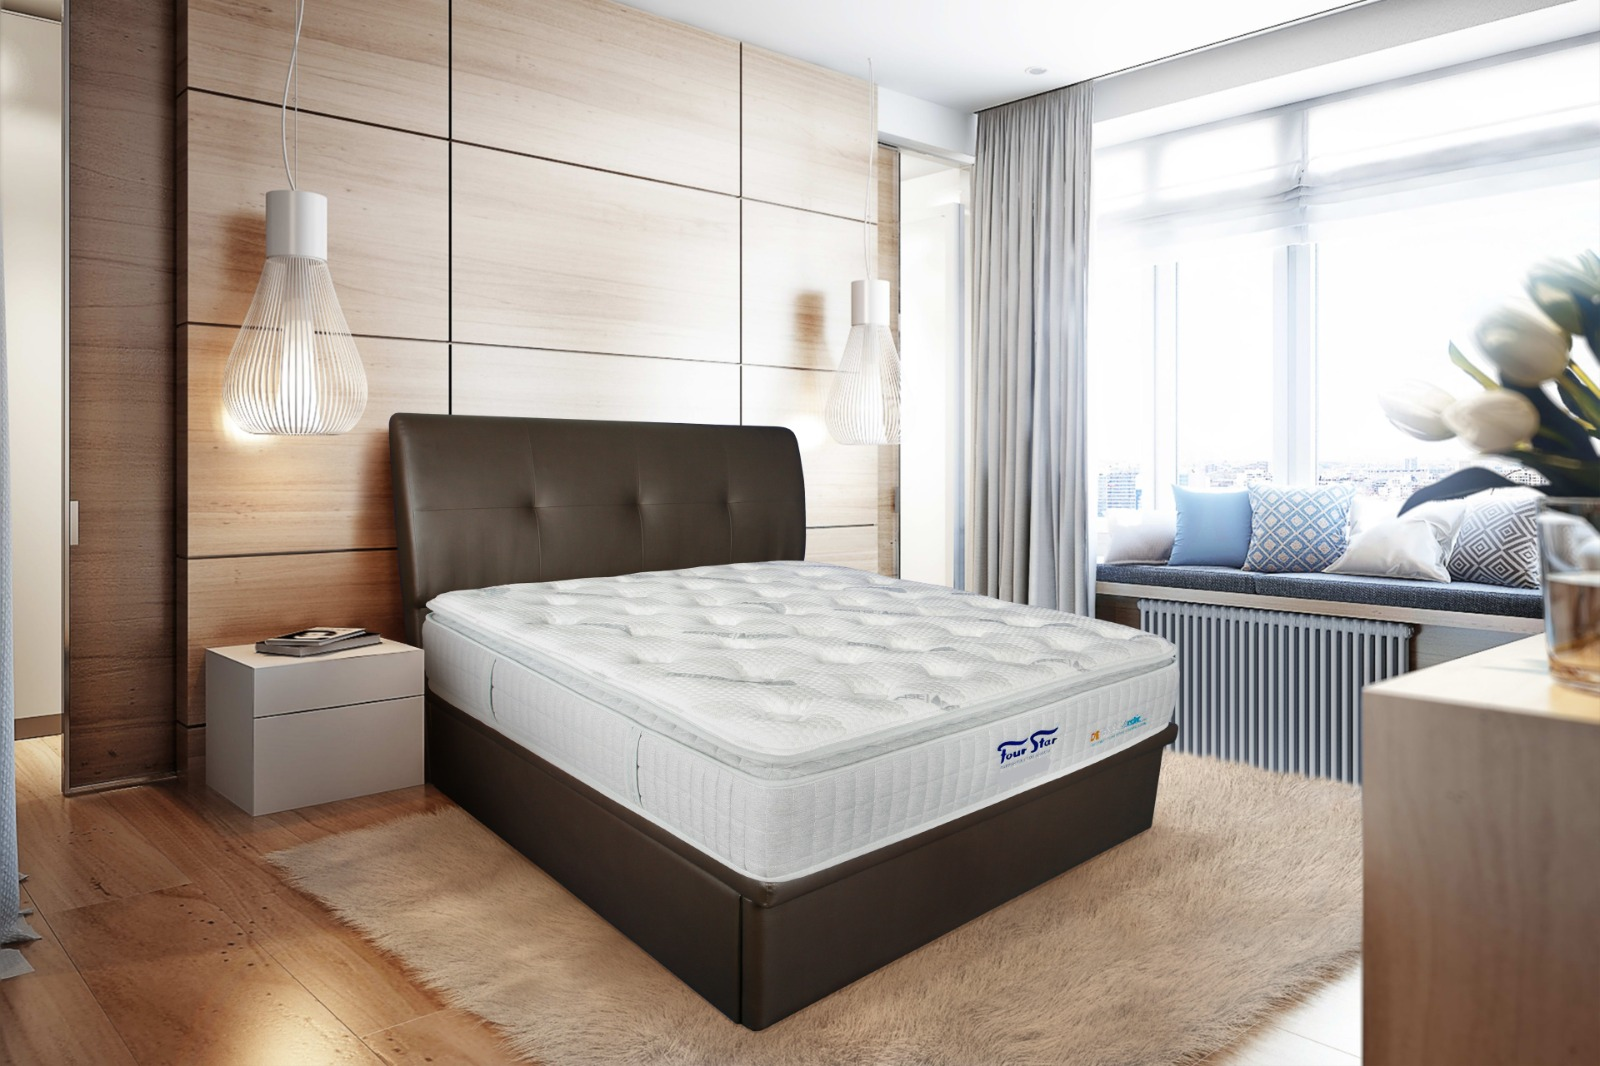 Introducing the revolutionary DETENSE | ArcticSilk™ series of mattresses by Four Star